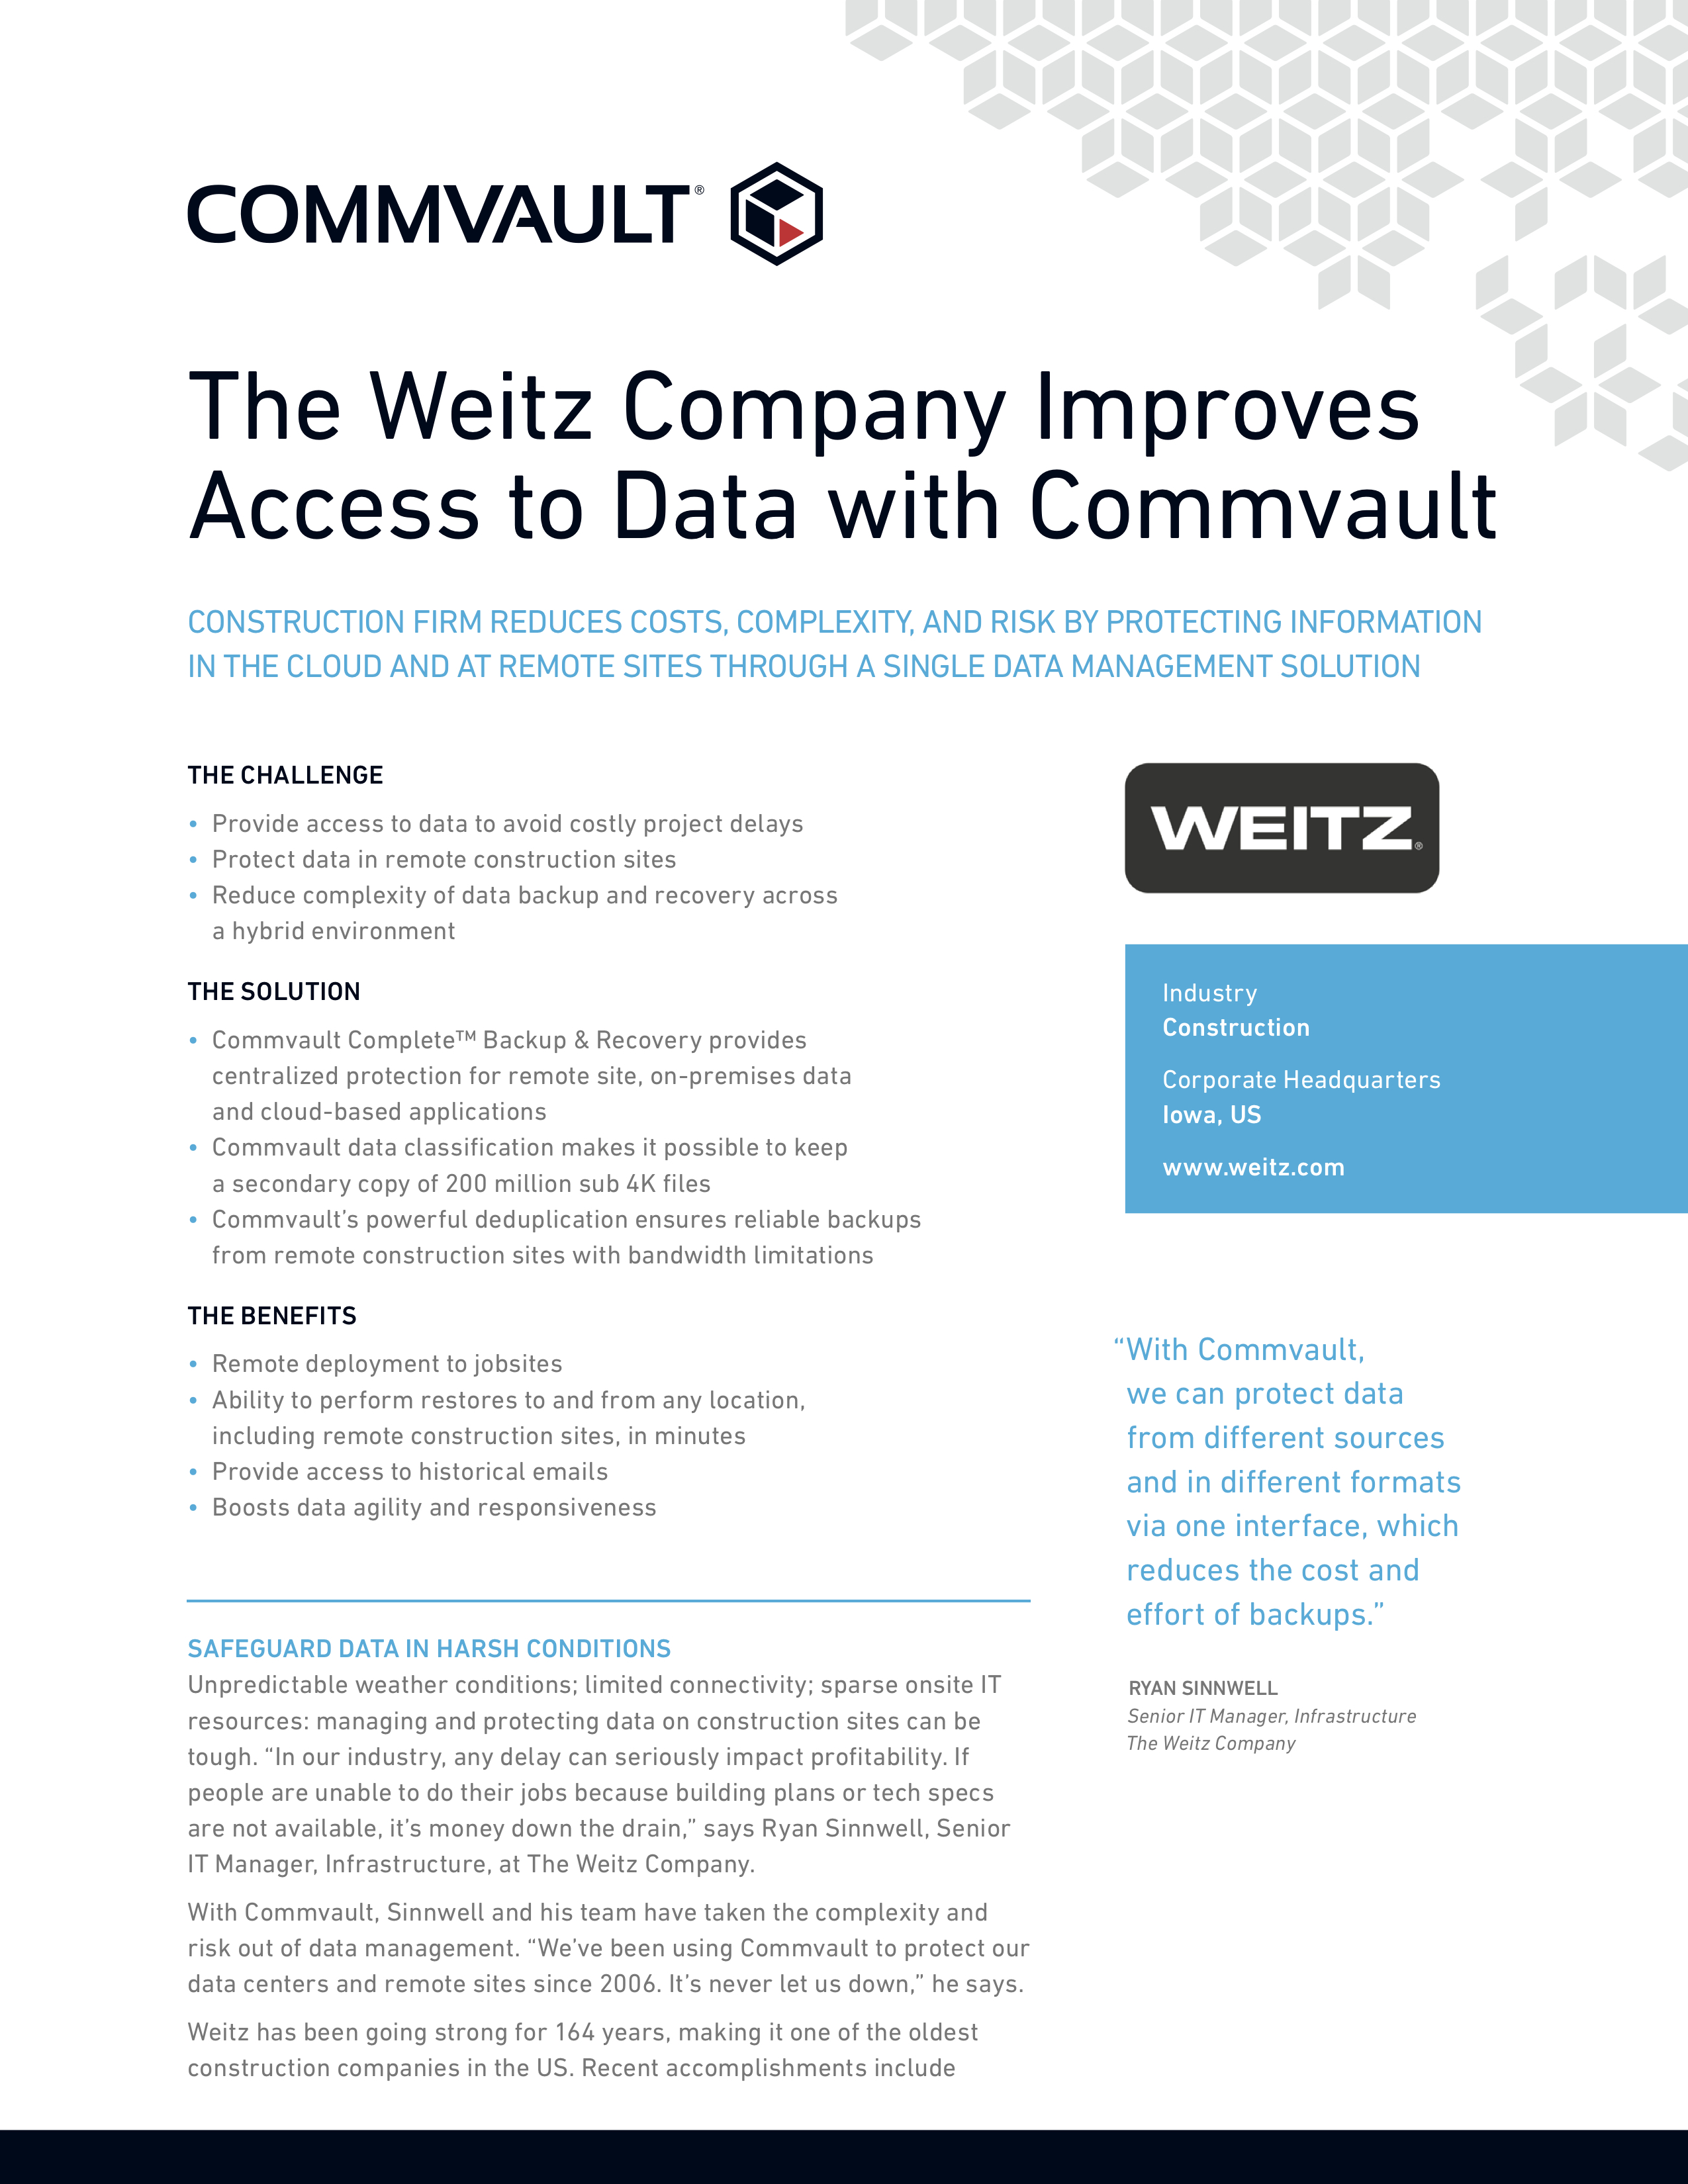 The Weitz Company Improves Access to Data with Commvault